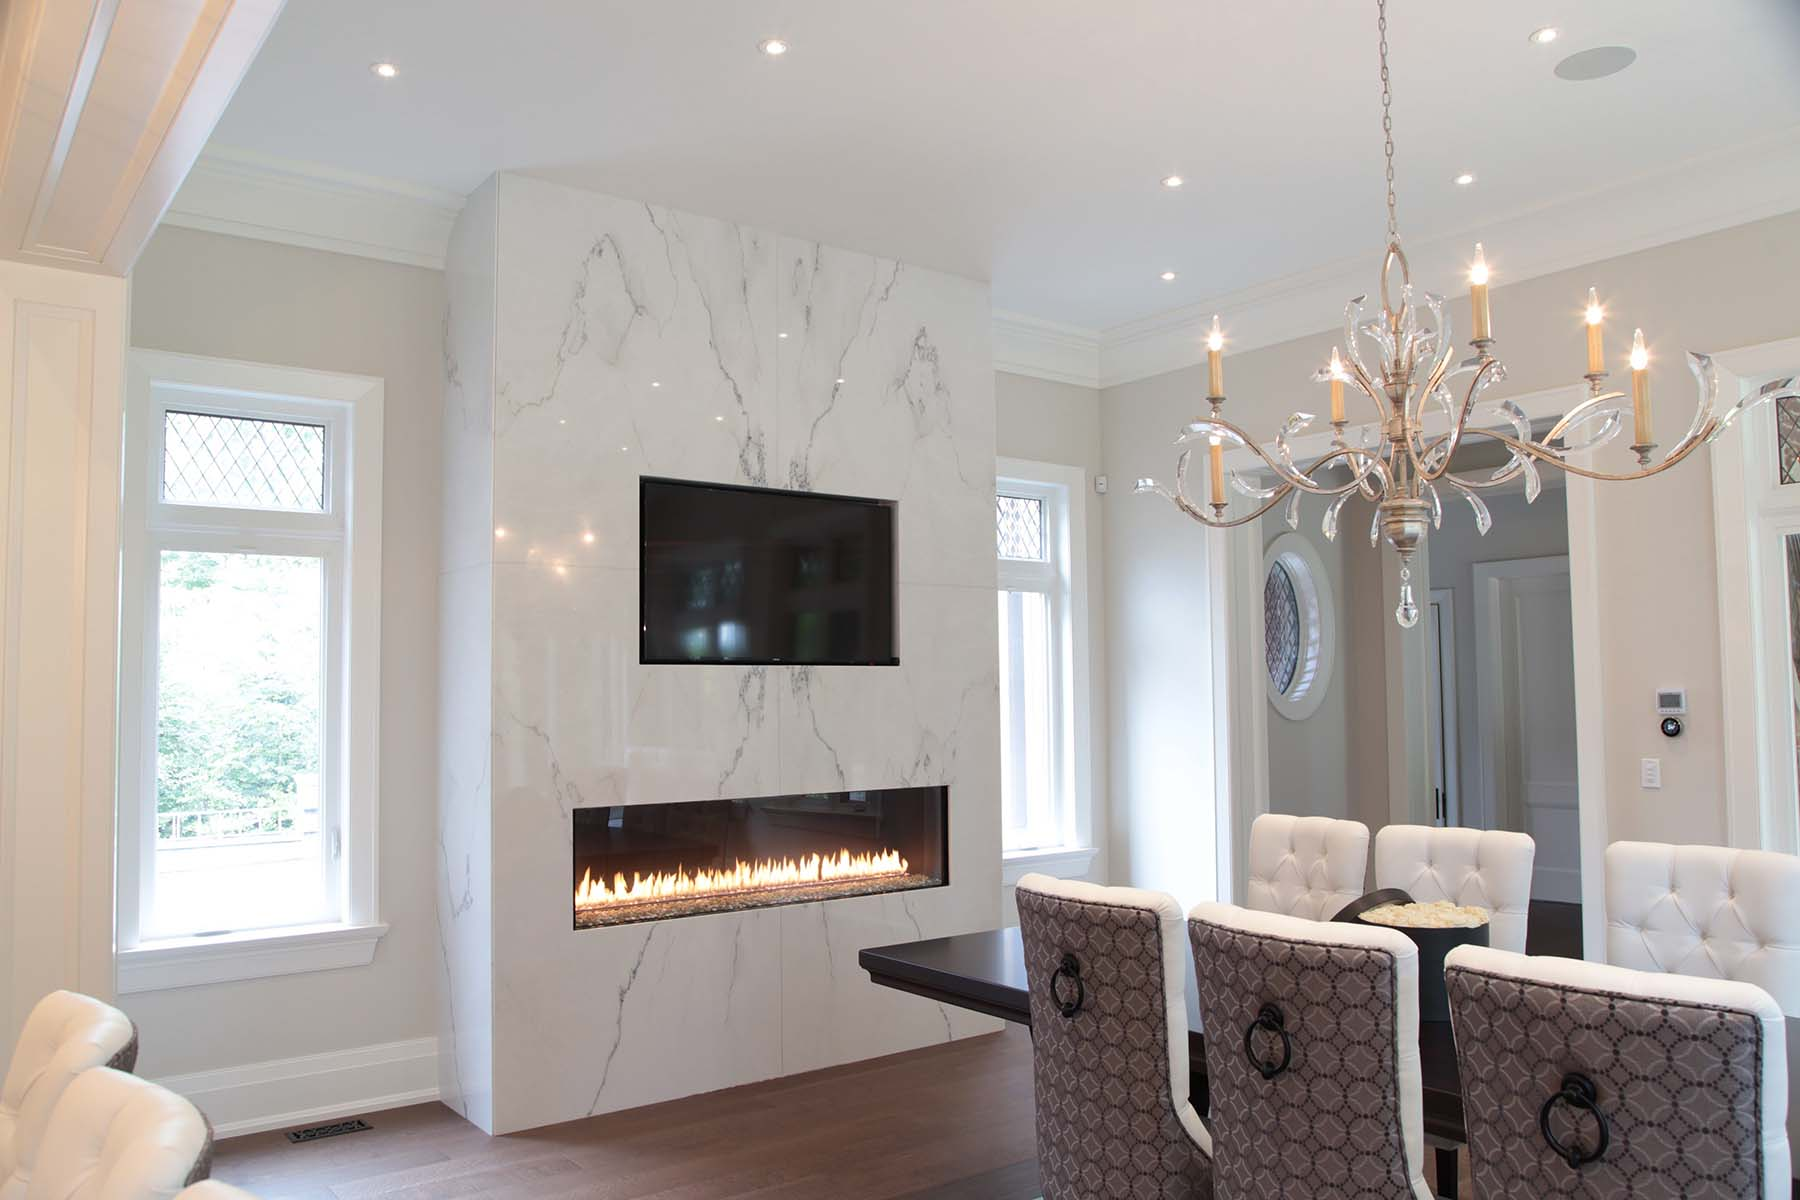 modern marble fireplace surround with modern gas fireplace and wall mounted TV